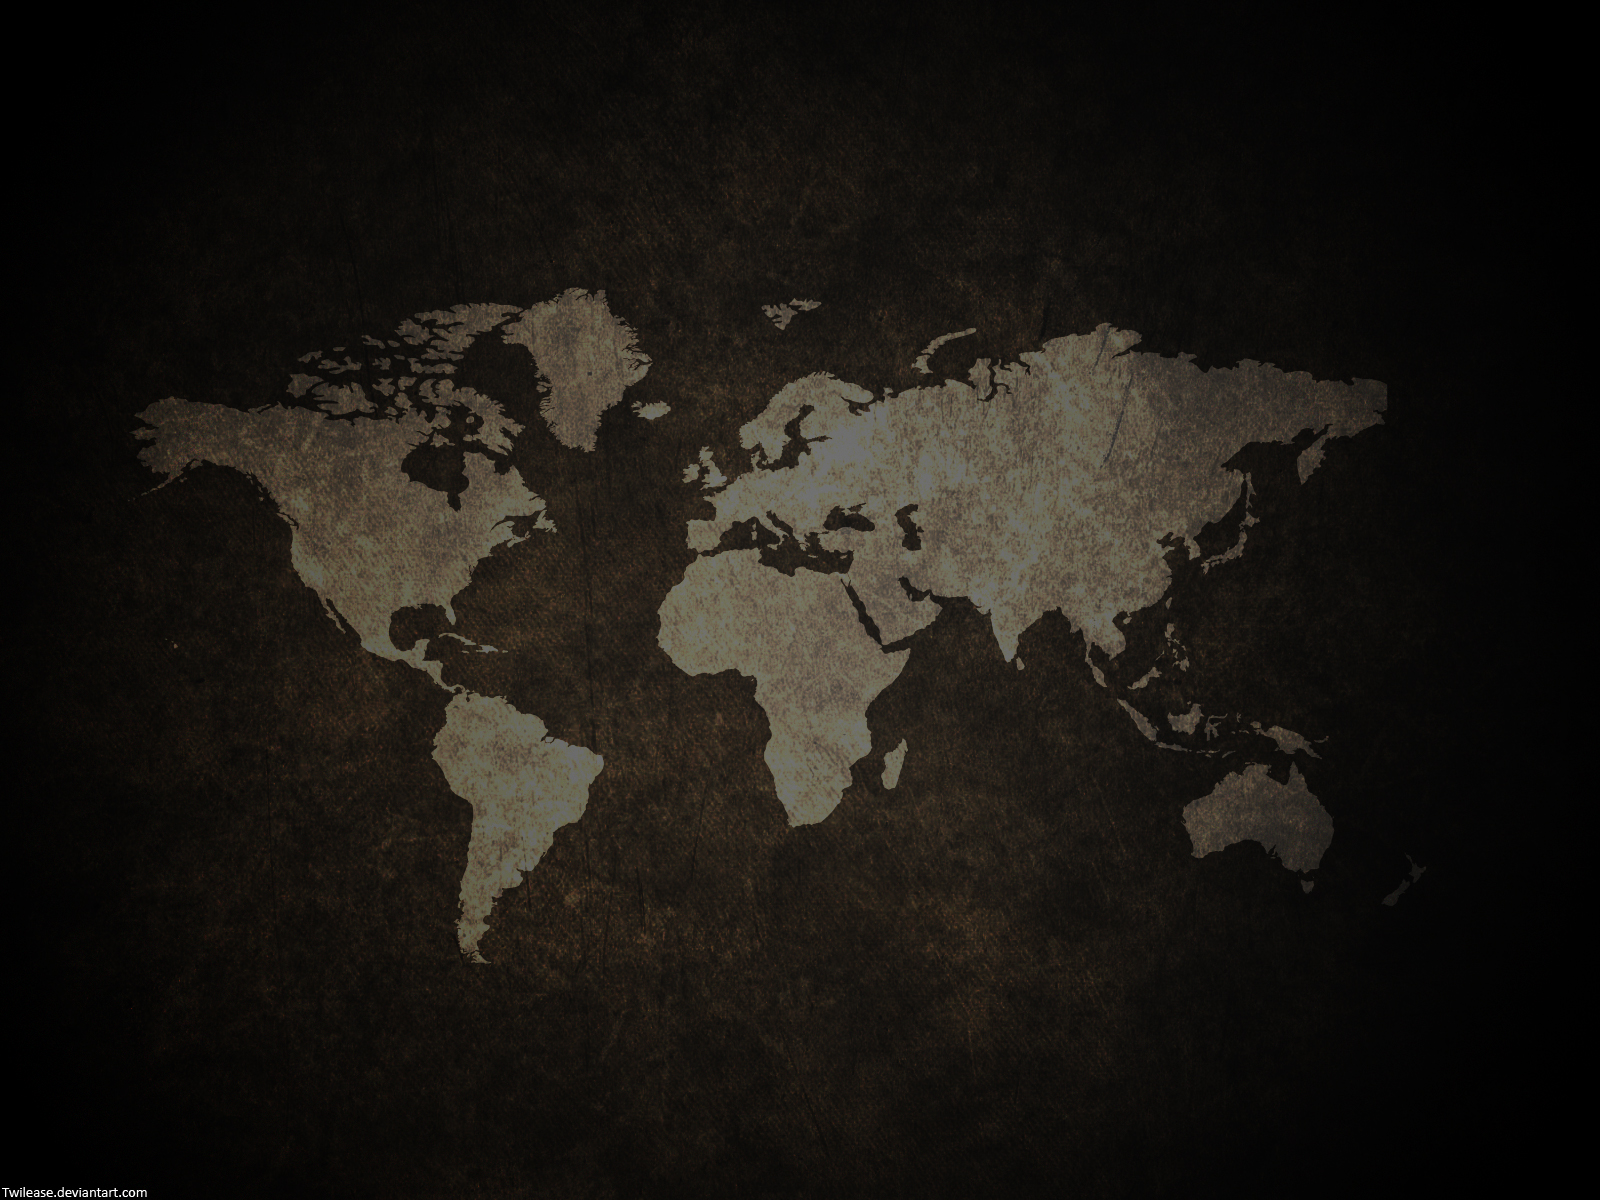 Global map wallpaper wallpapersafari global map awesome wallpapers 1600x1200 gumiabroncs Choice Image